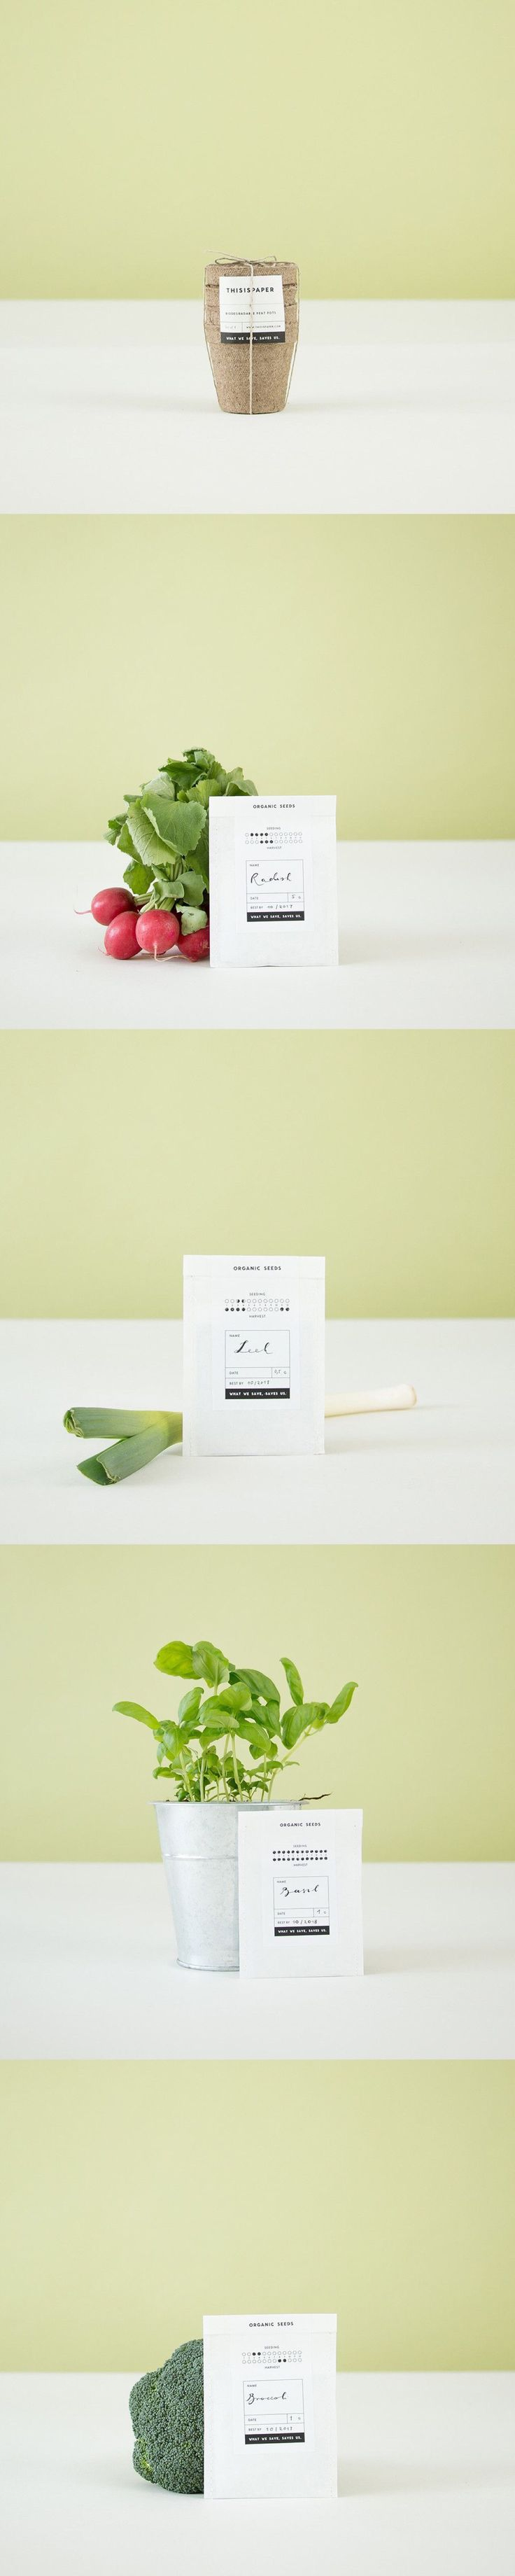 Organic Seed Packaging by ThisIsPaper → more on designvertise.com